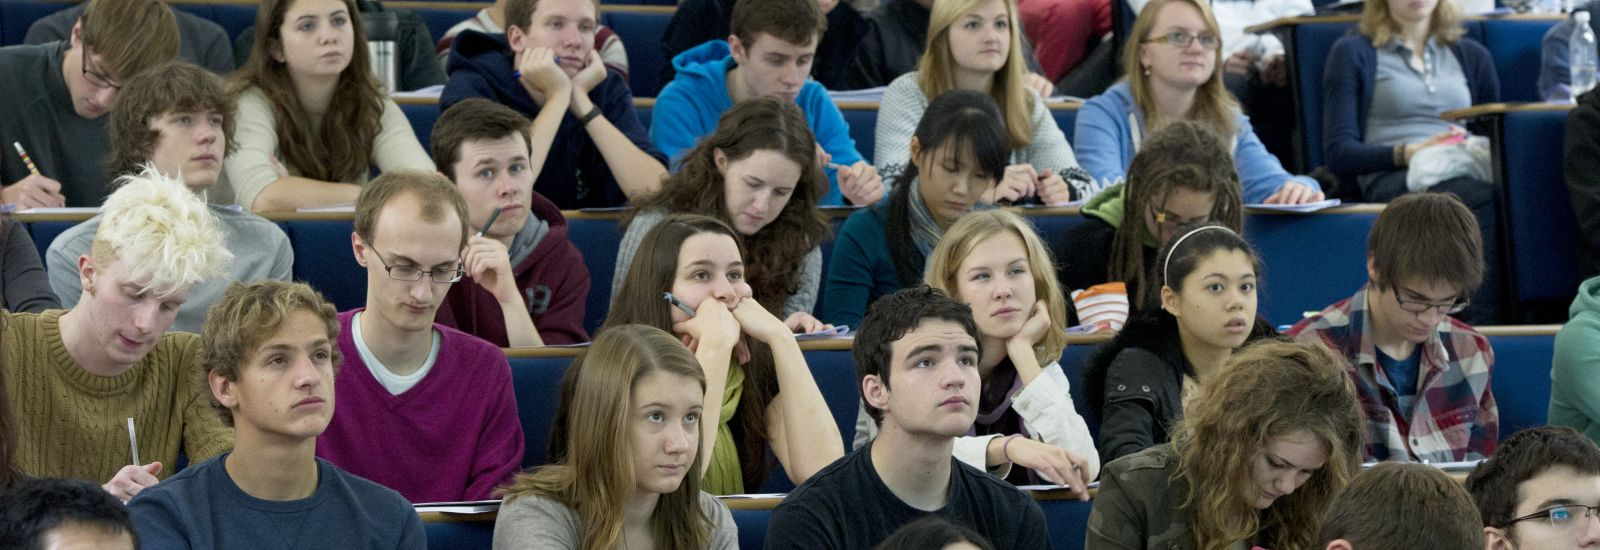 Oxford students in a lecture